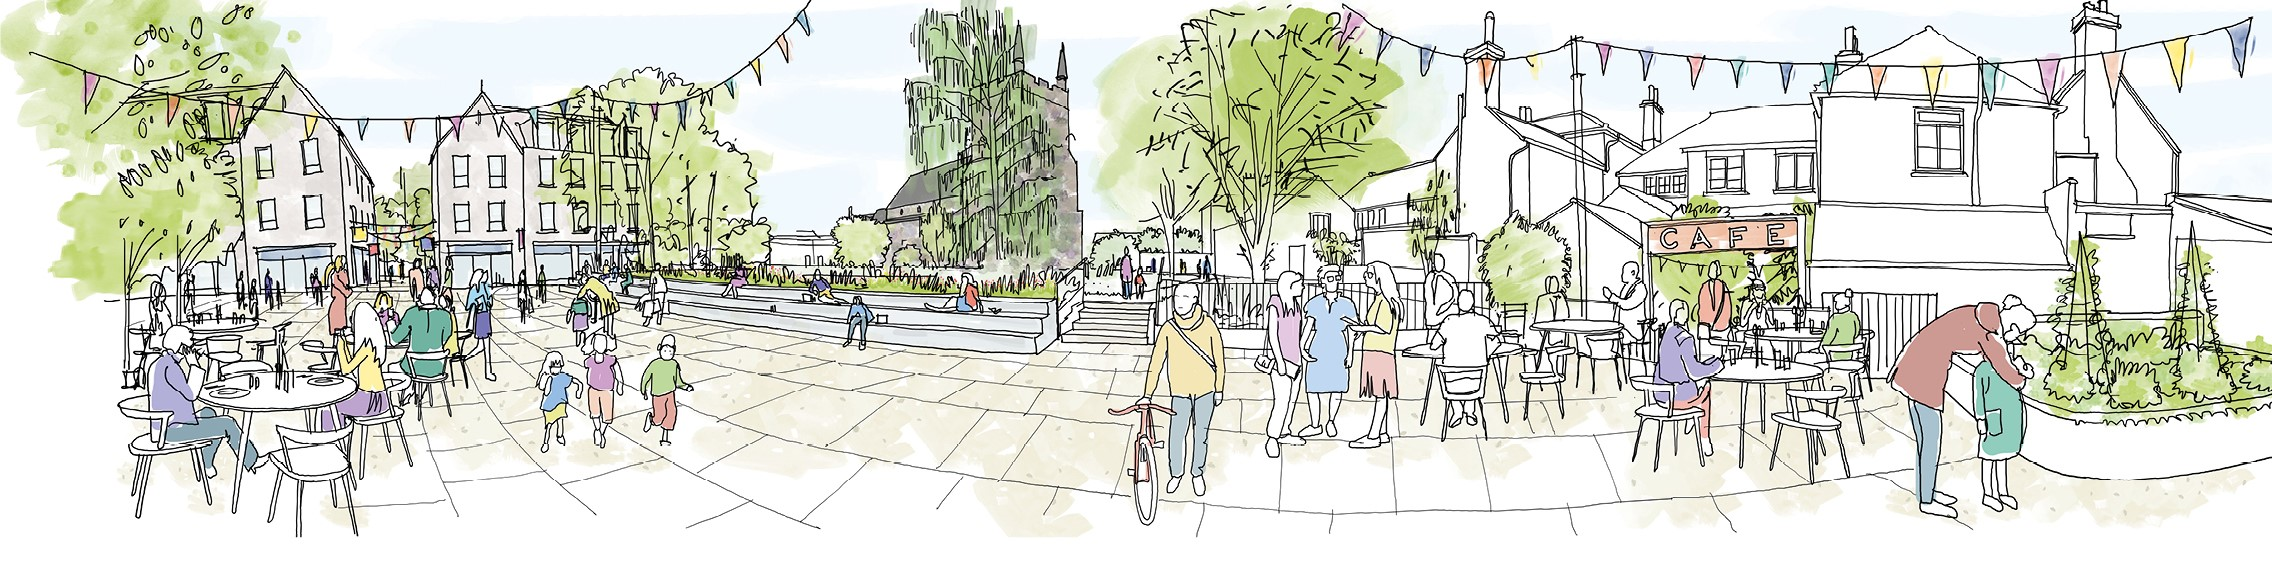 Re-energised town centre artistic impression